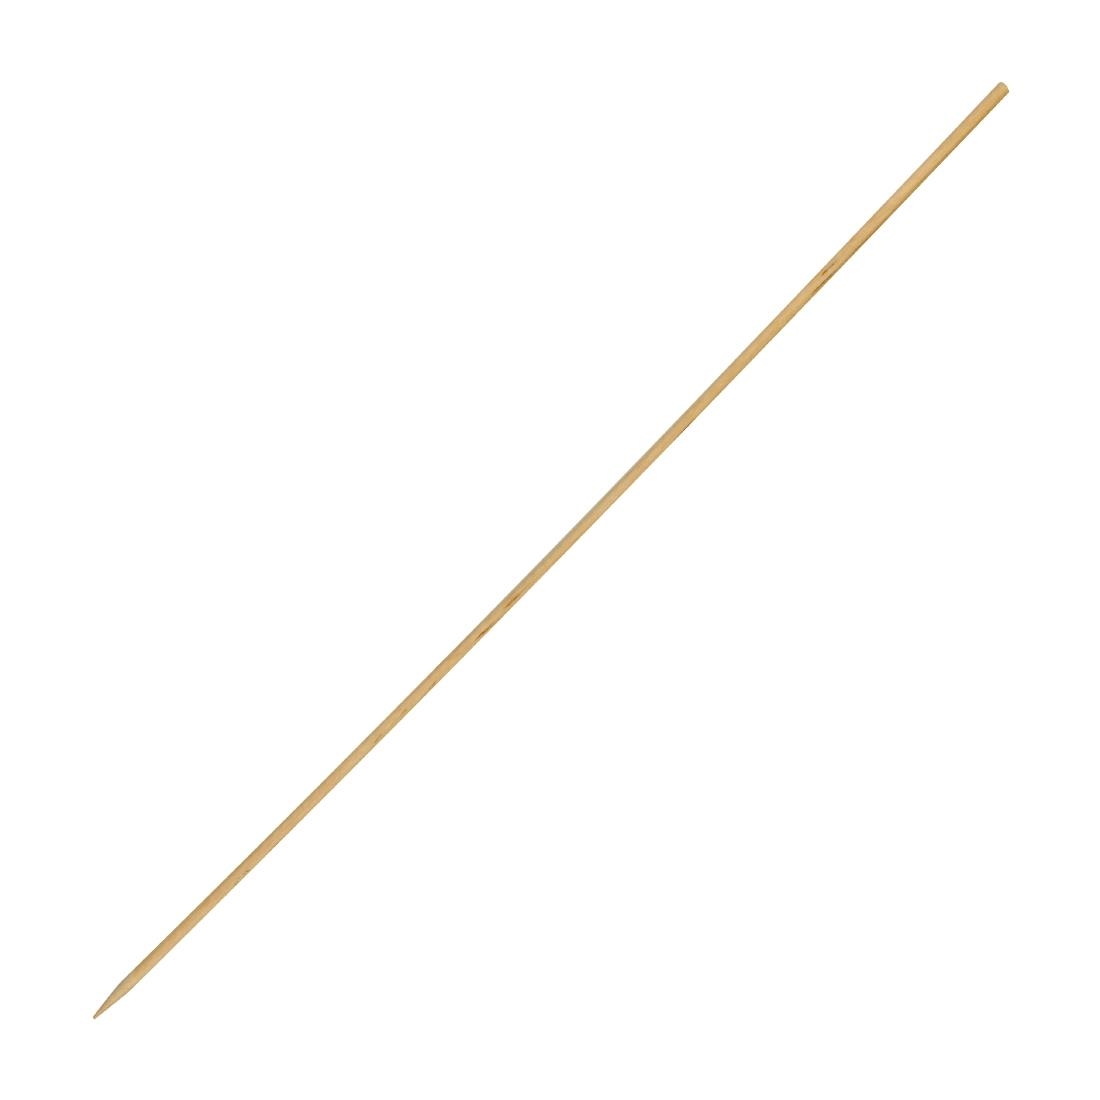 Fiesta Green Biodegradable Wooden Skewers 250mm Pack of 200